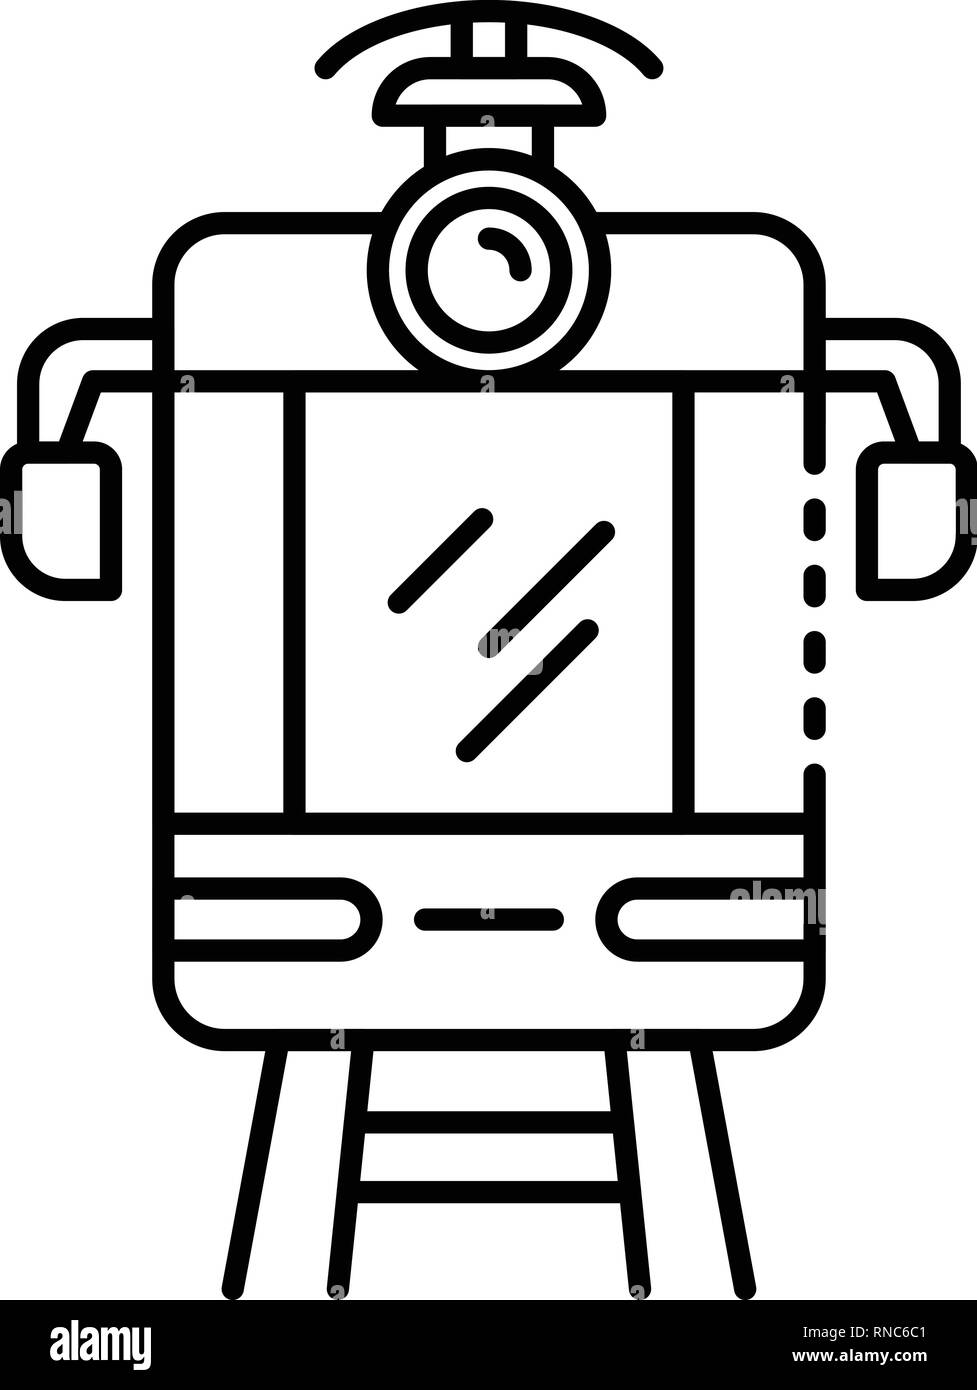 Tram car icon, outline style - Stock Vector